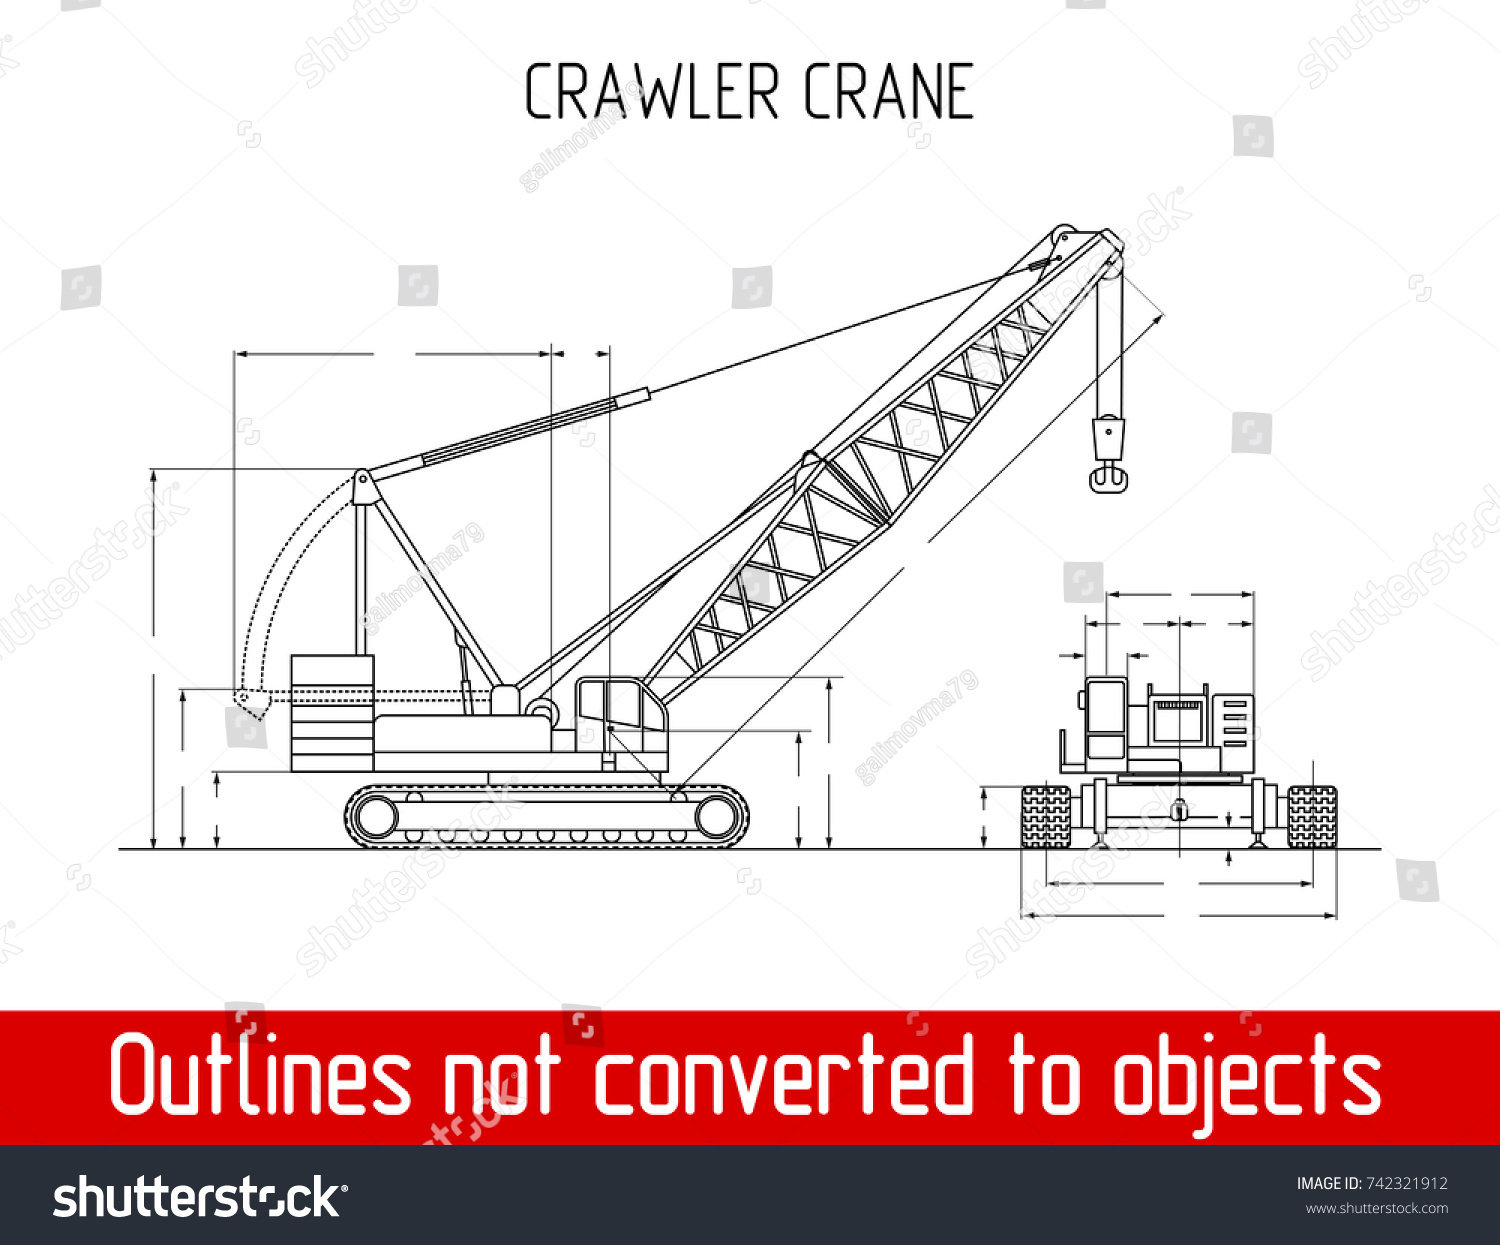 Typical Crawler Crane Overall Dimensions Blueprint Stock Vector ...